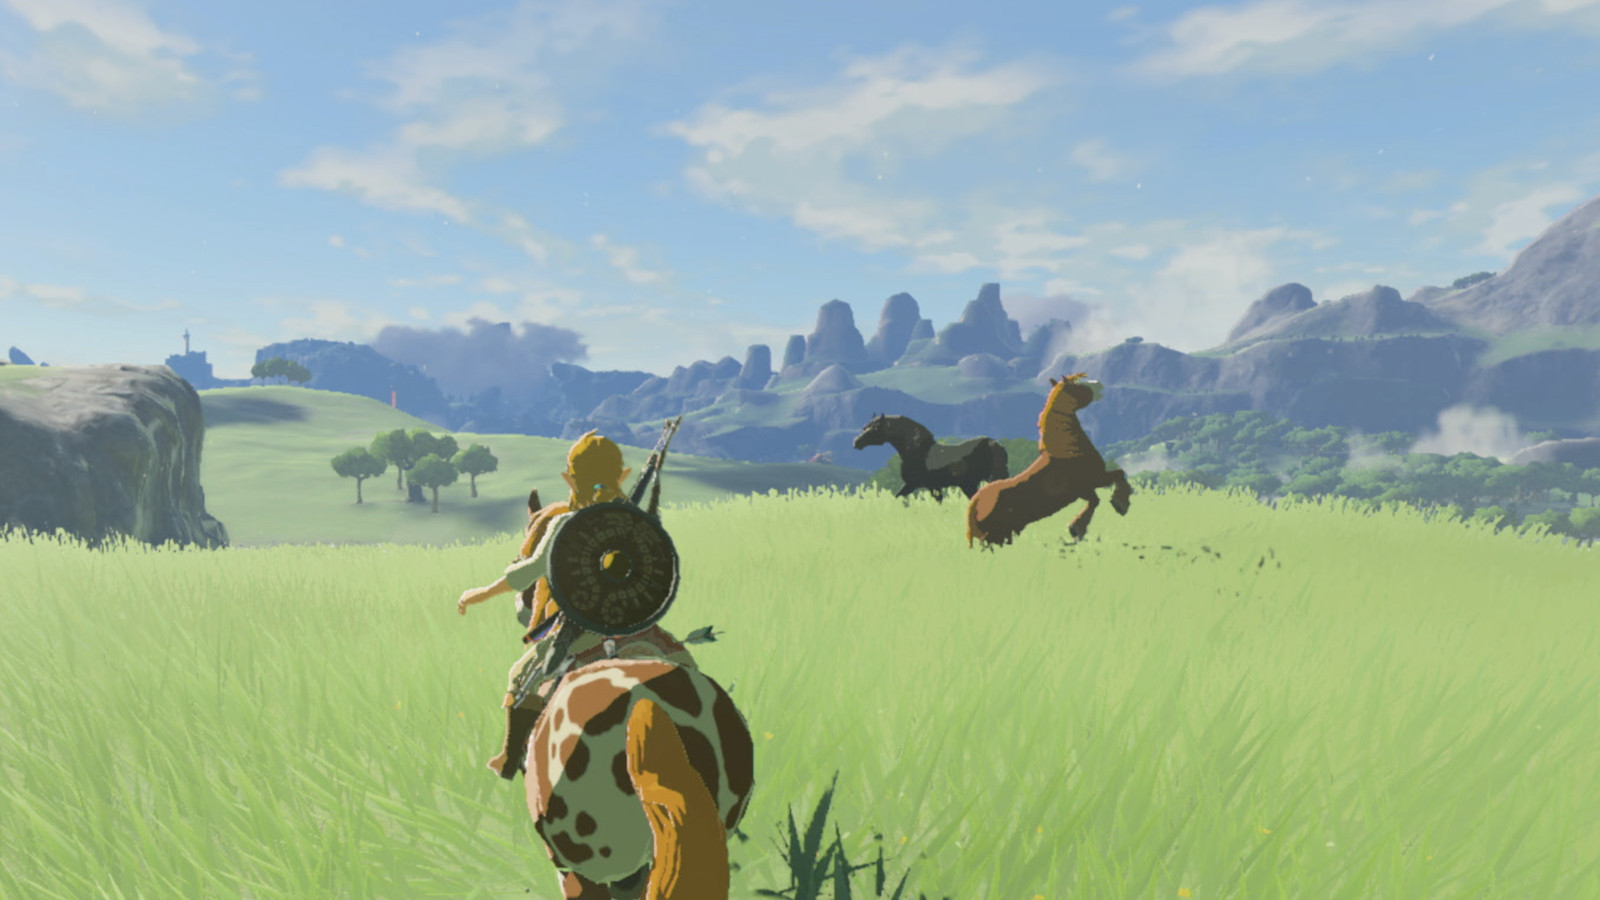 zelda gameplay and nintendo switch best selling